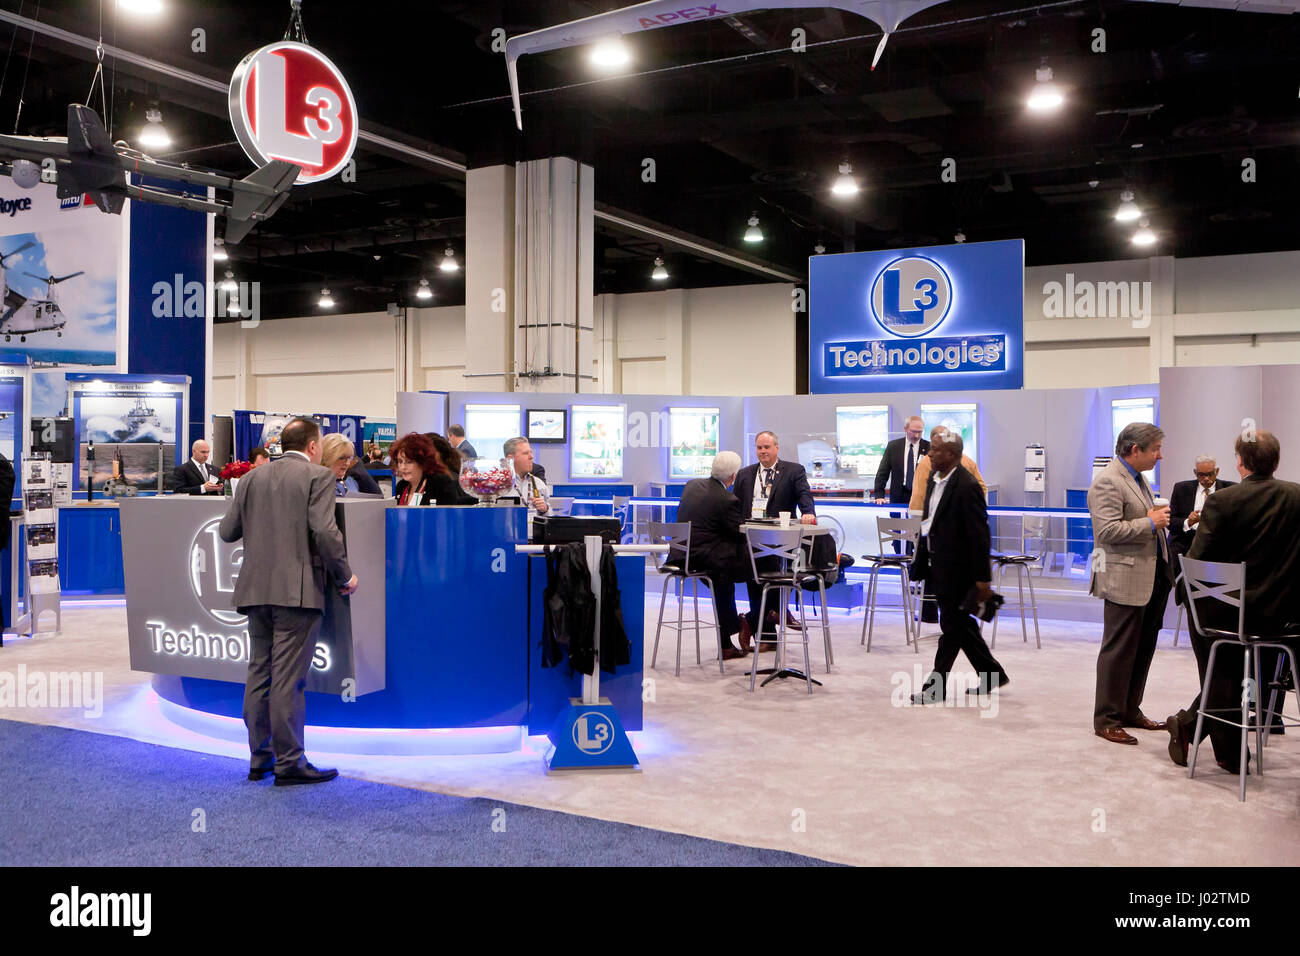 L3 exhibit booth at 2017 US Navy League Sea-Air-Space Exposition - Washington, DC USA - Stock Image